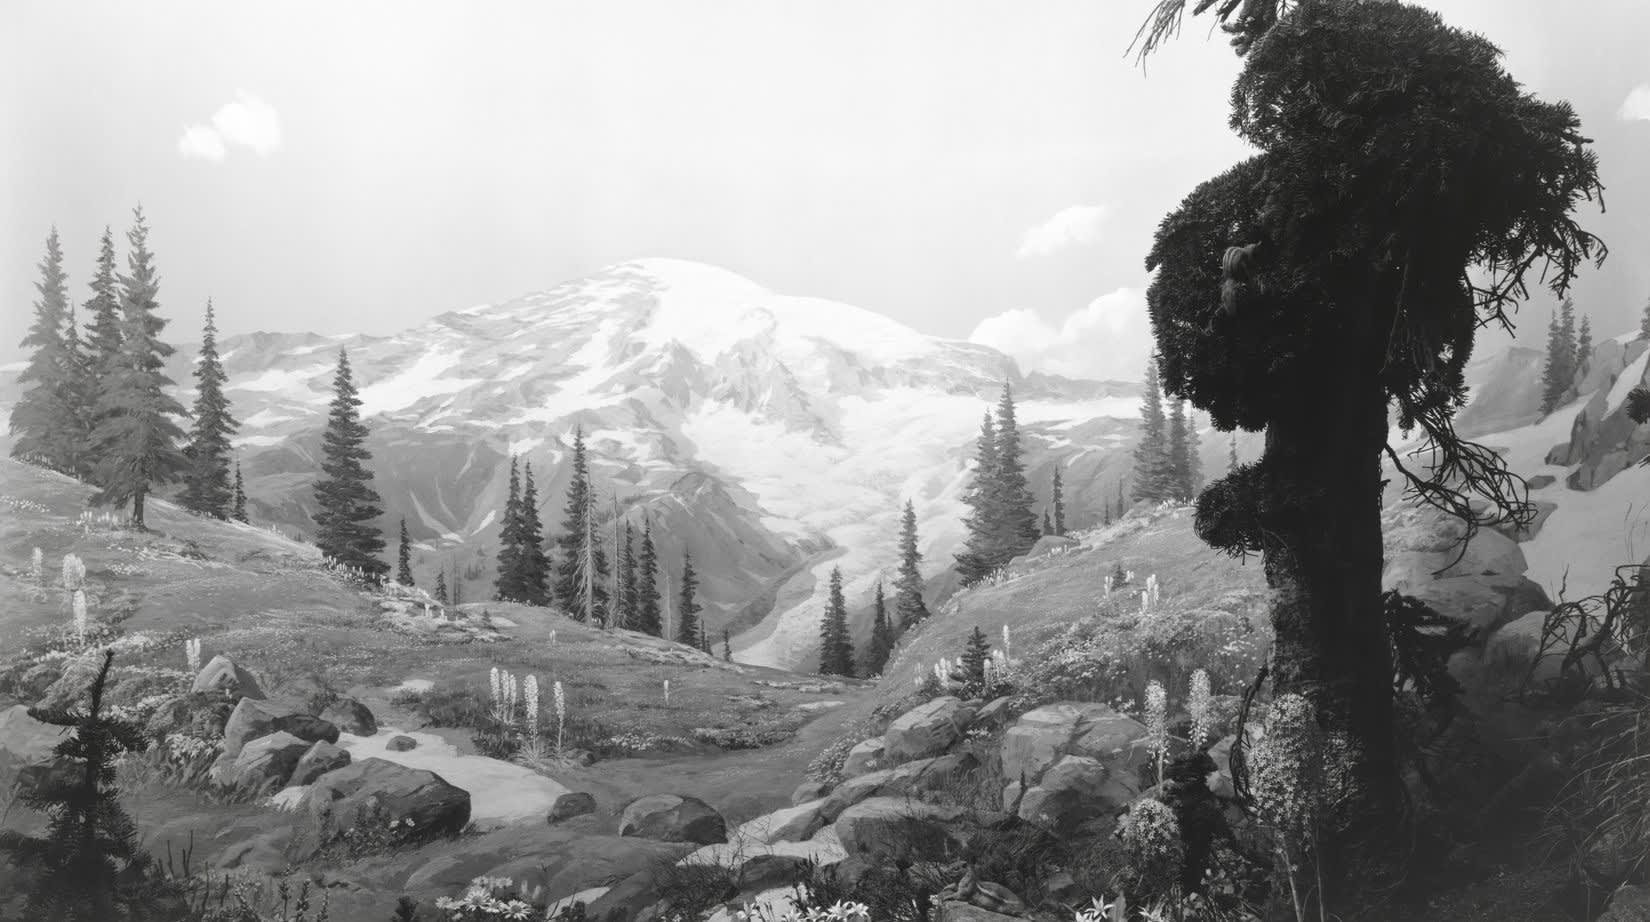 Black and white photograph of a mountainous landscape.